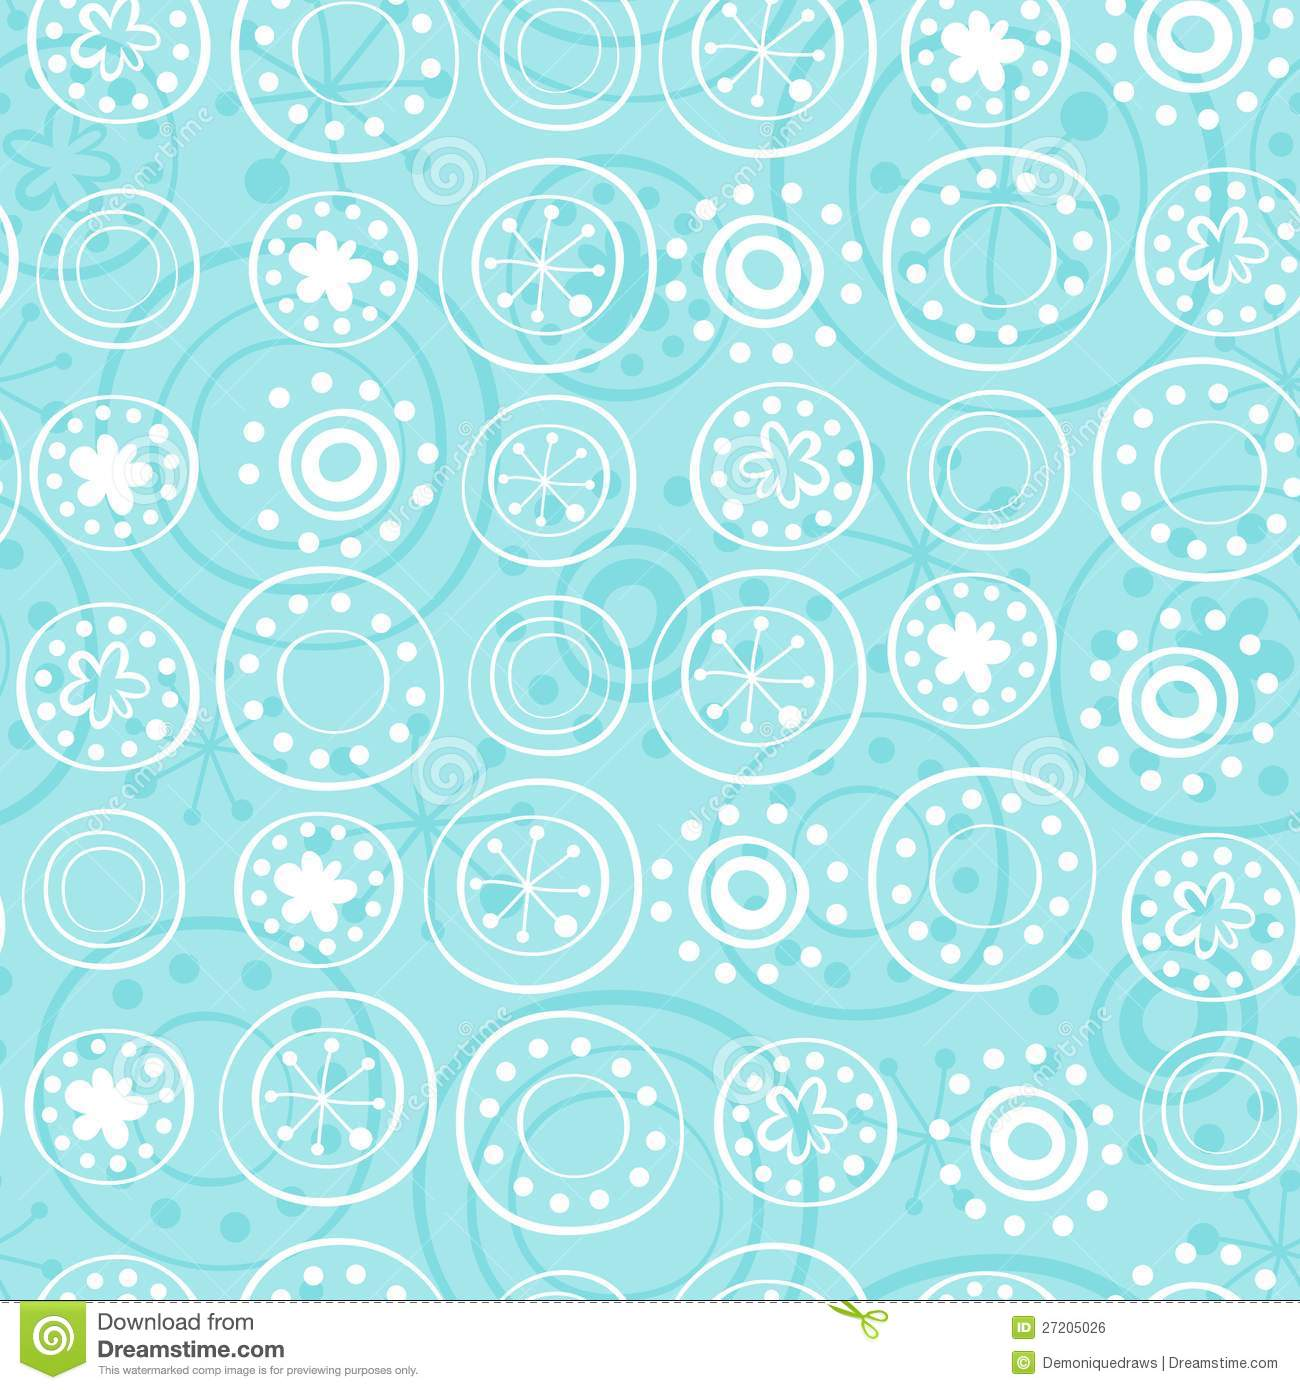 Royalty Free Stock Image: Rows of snowflakes on baby blue. Image ...